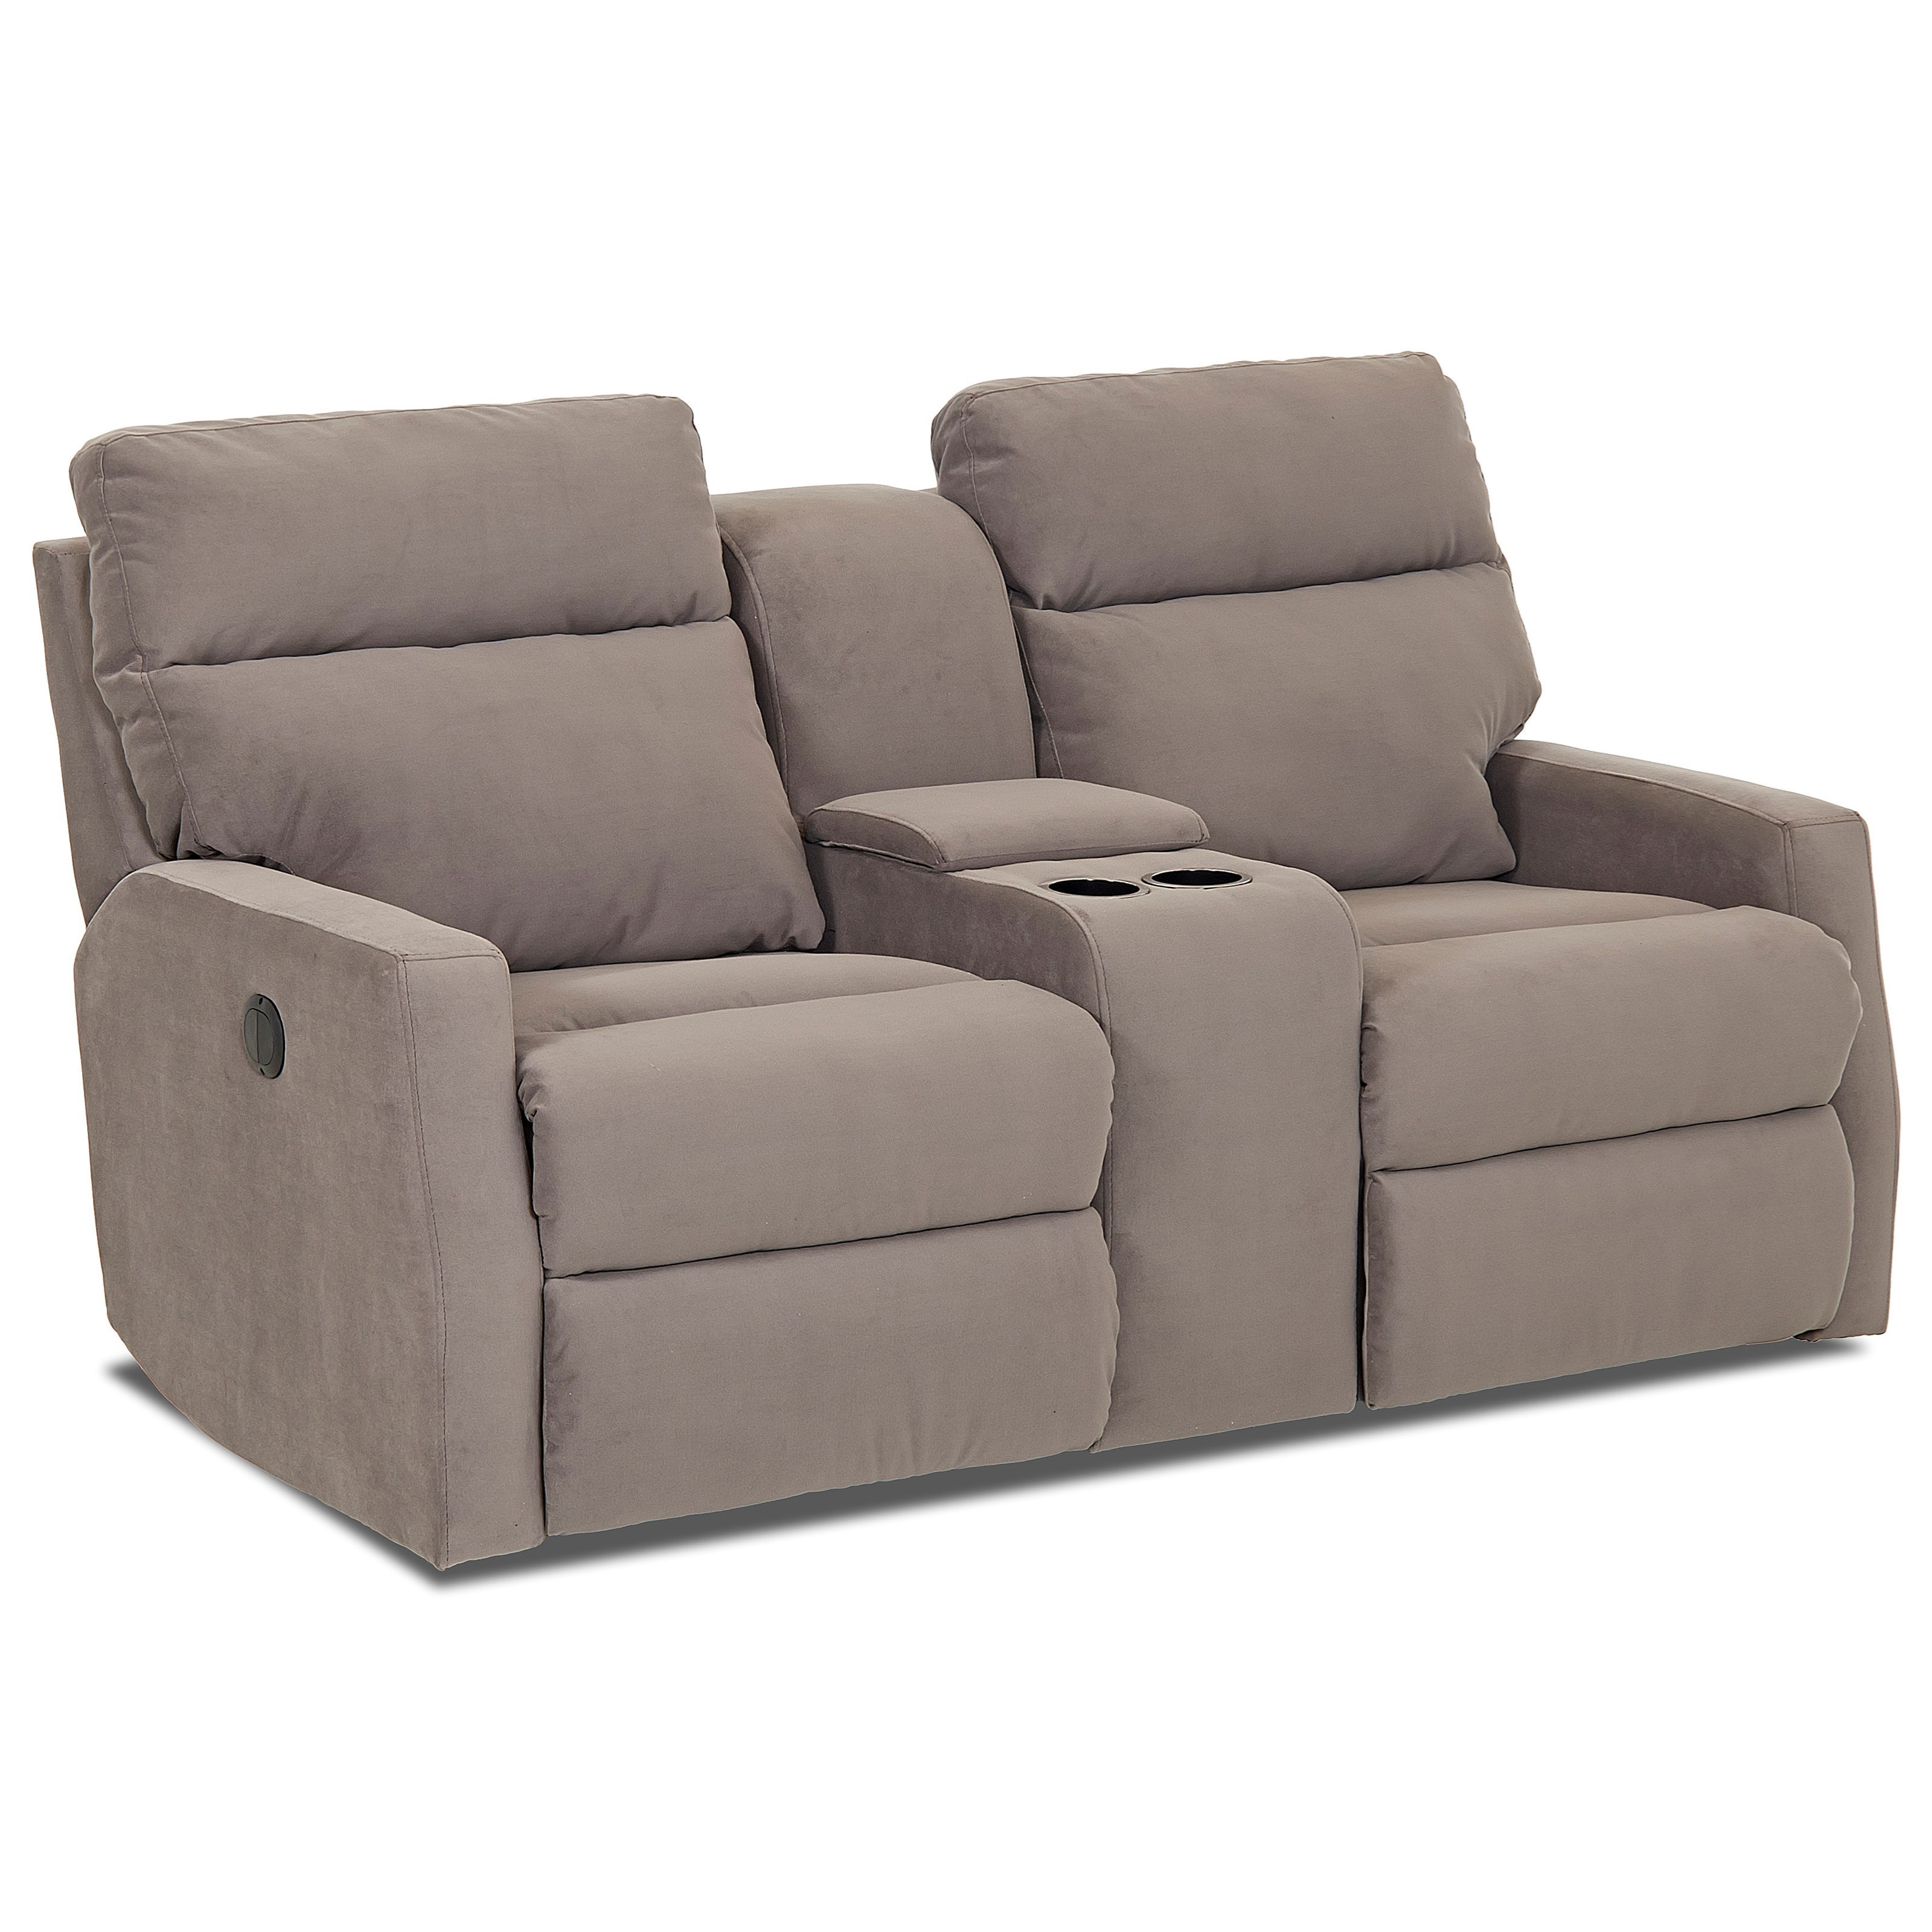 Klaussner Monticello Power Reclining Loveseat With